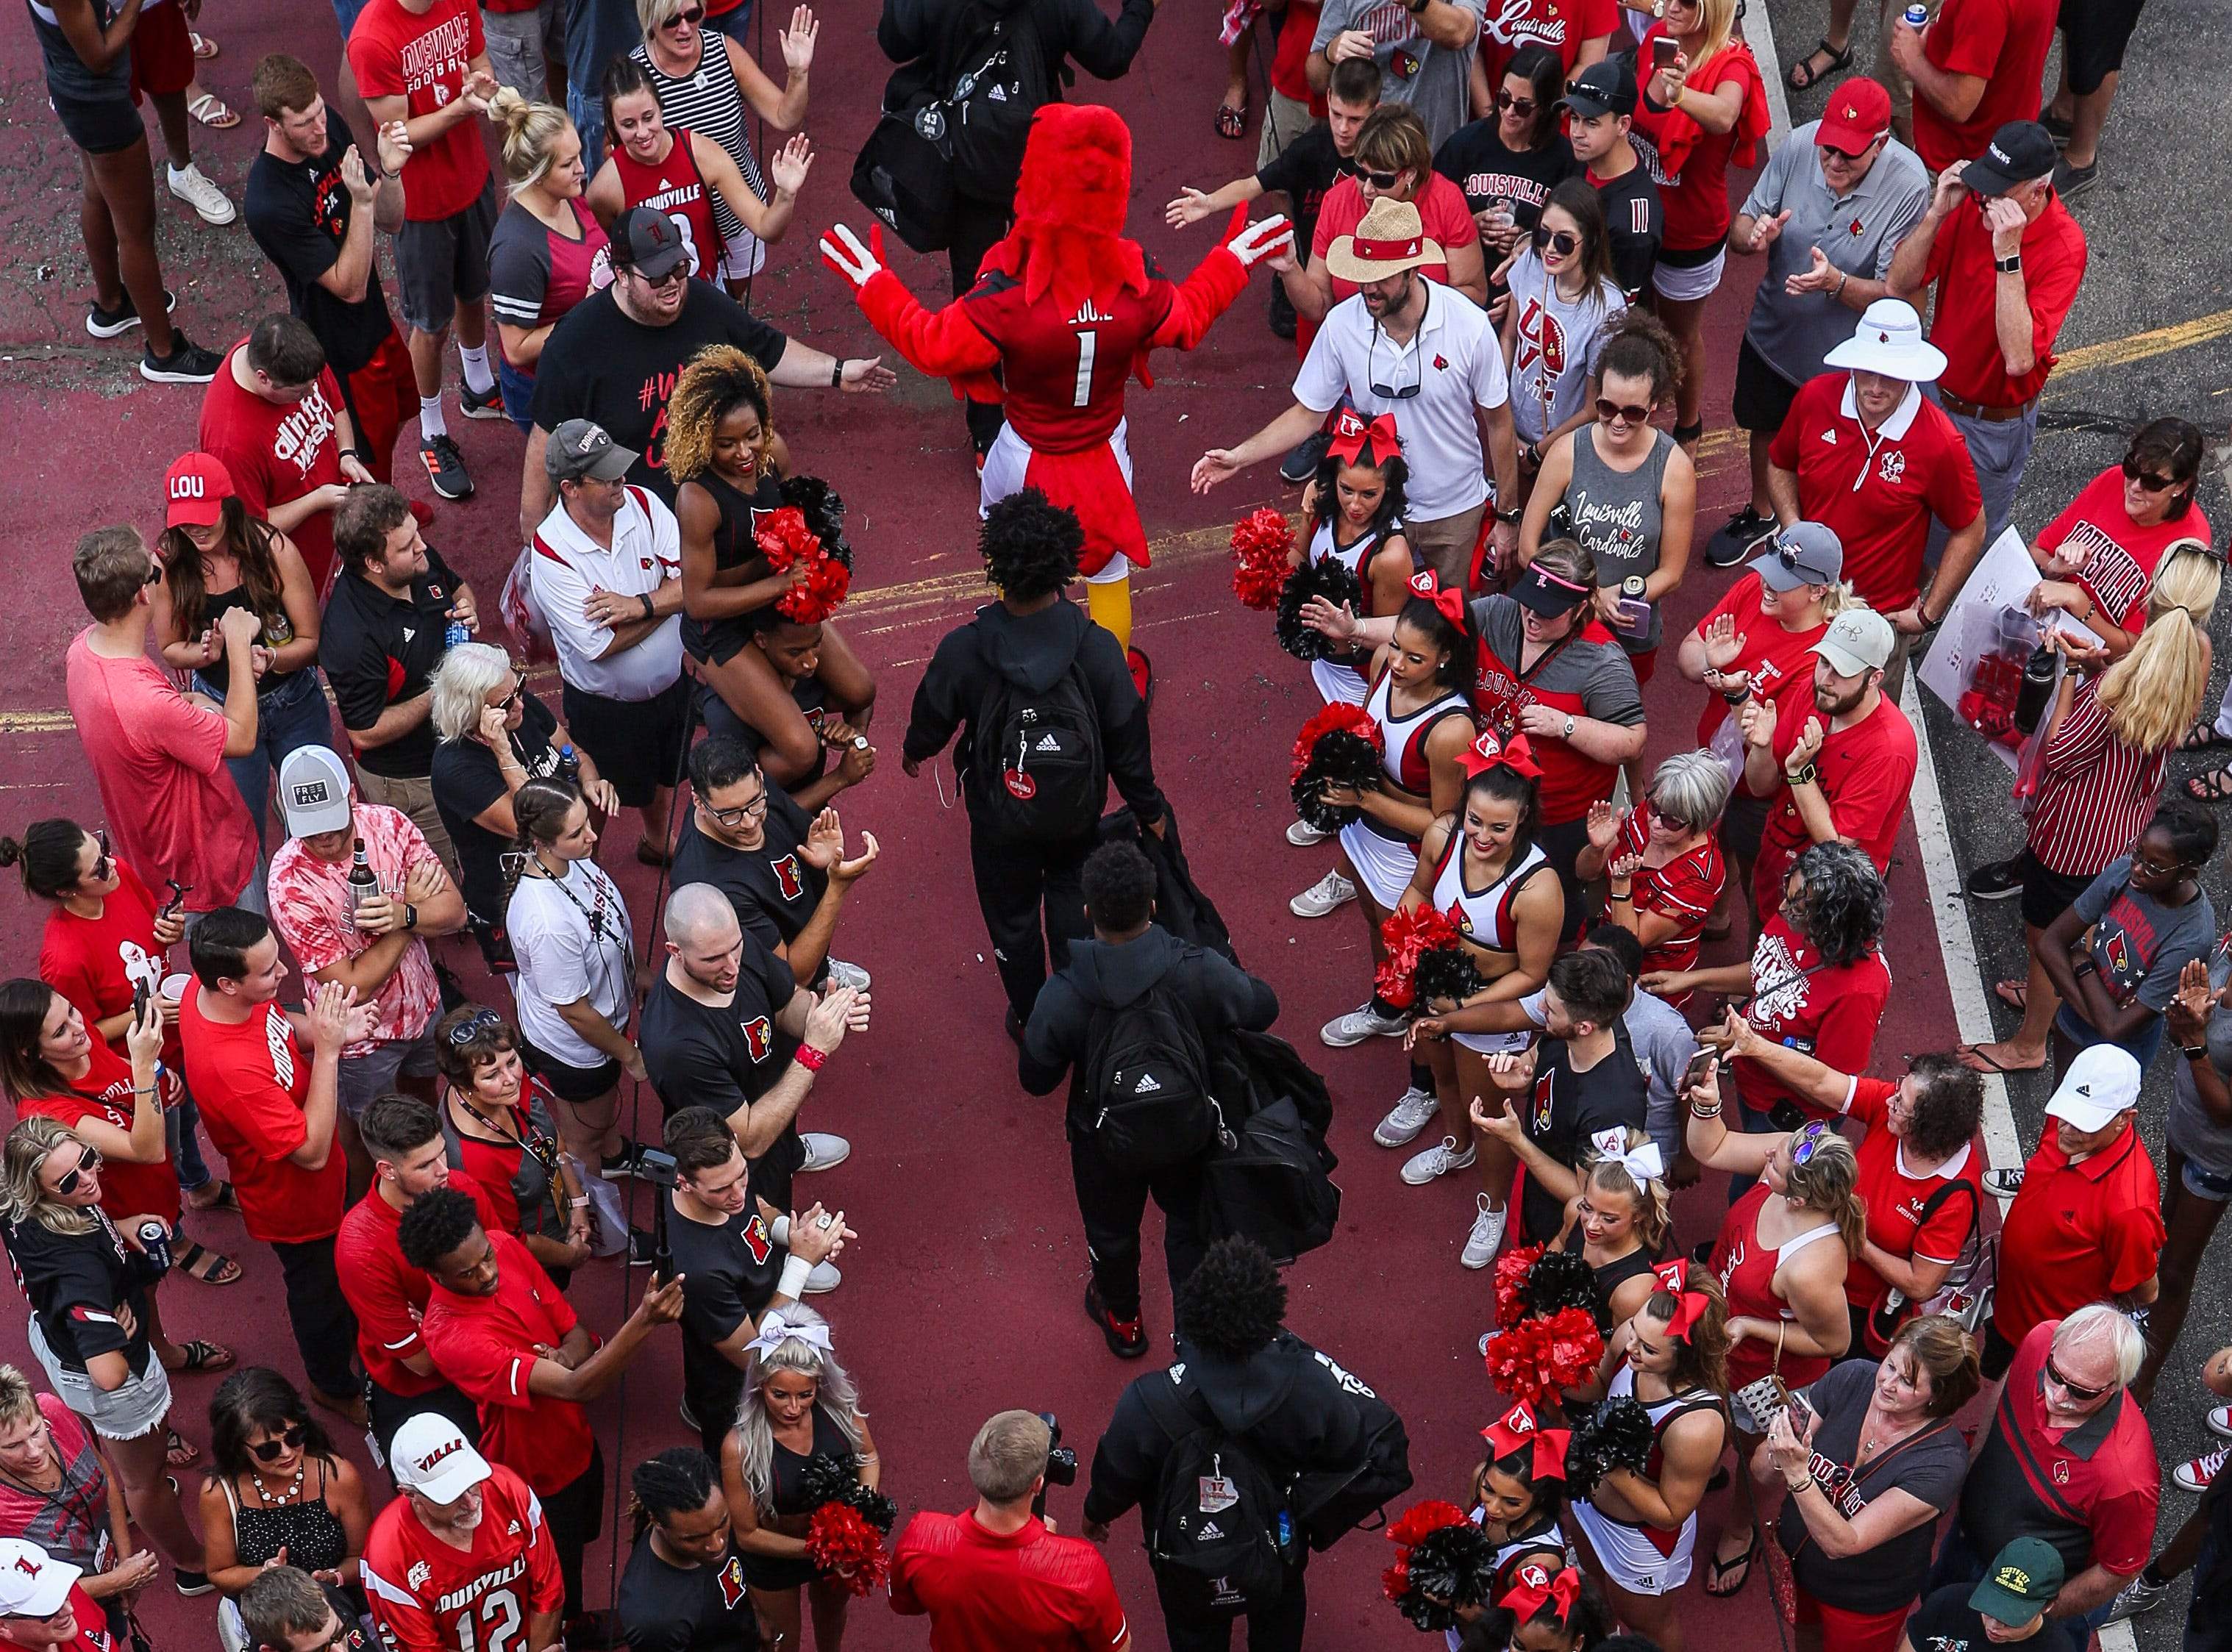 The U of L football team greets fans before the Cardinals' game against Western Kentucky Saturday, Sept. 15, 2018. Last week's Cards March was cancelled due to bad weather.